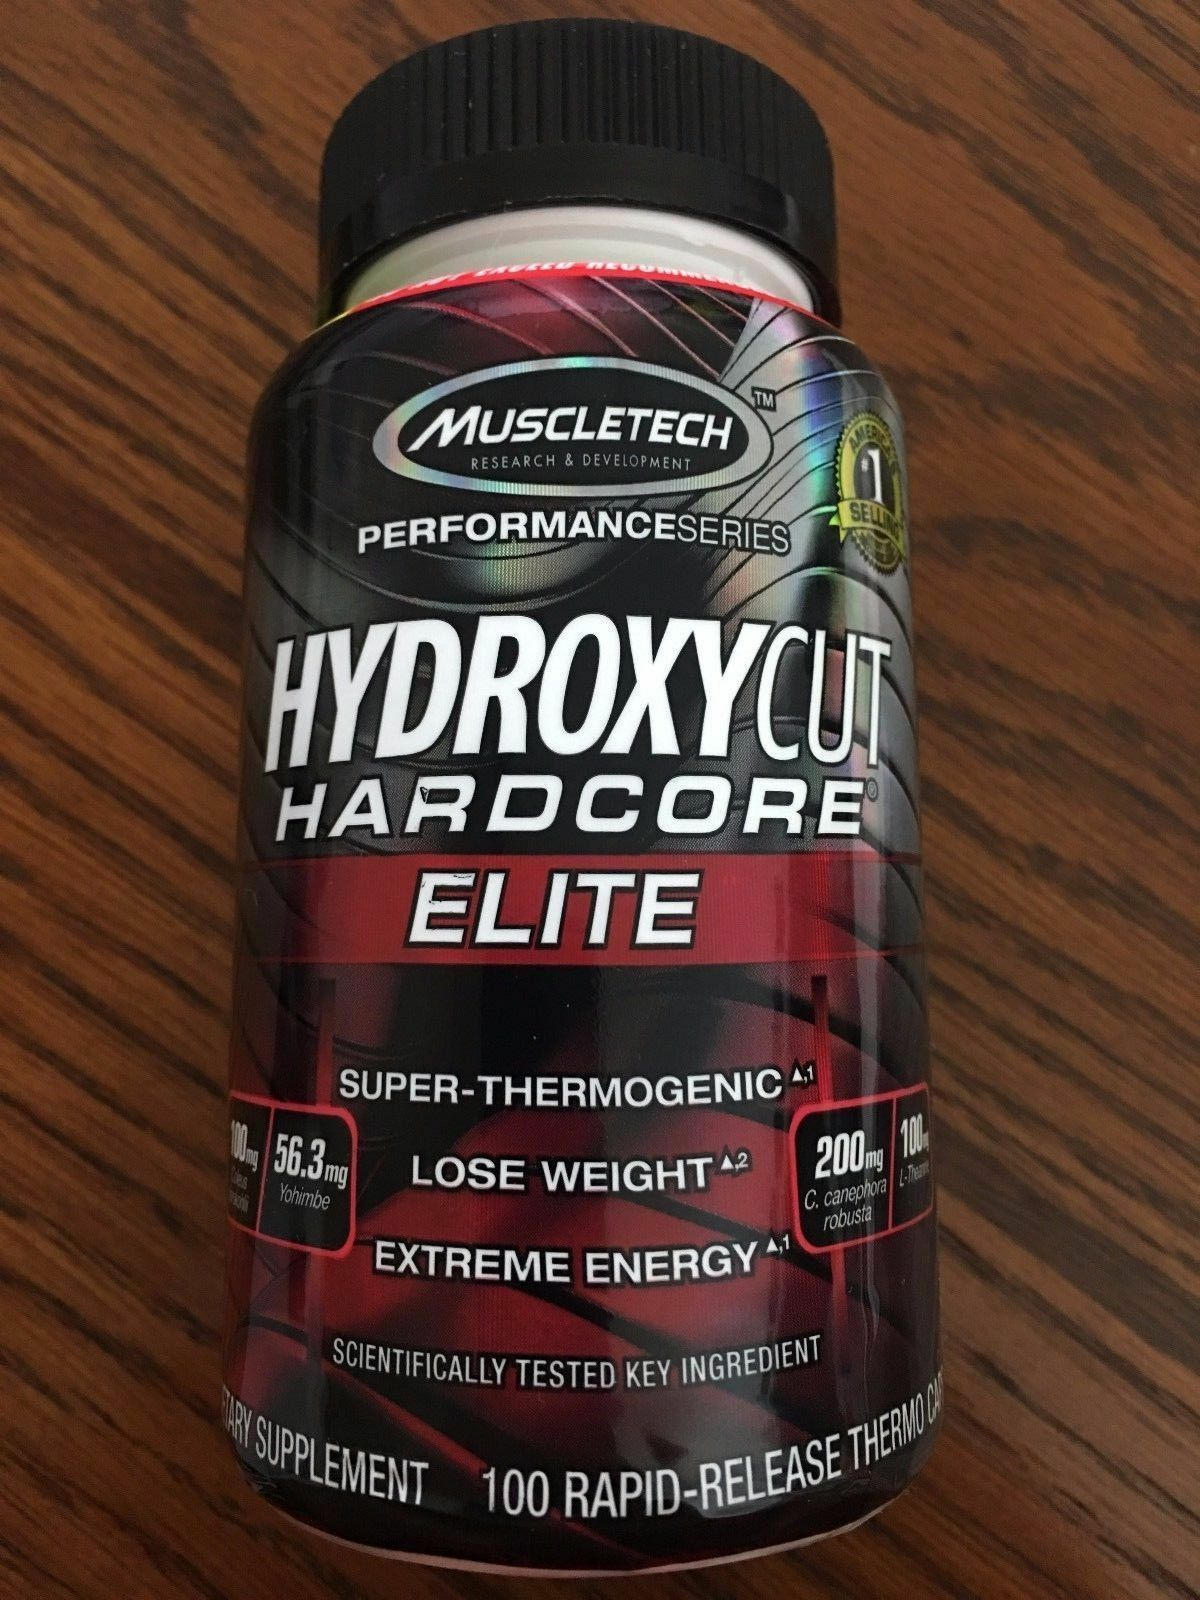 MuscleTech HYDROXYCUT Hardcore Crazy Elite 100 Caps Crazy Hardcore Sale MT Free TATTOO dfe24c